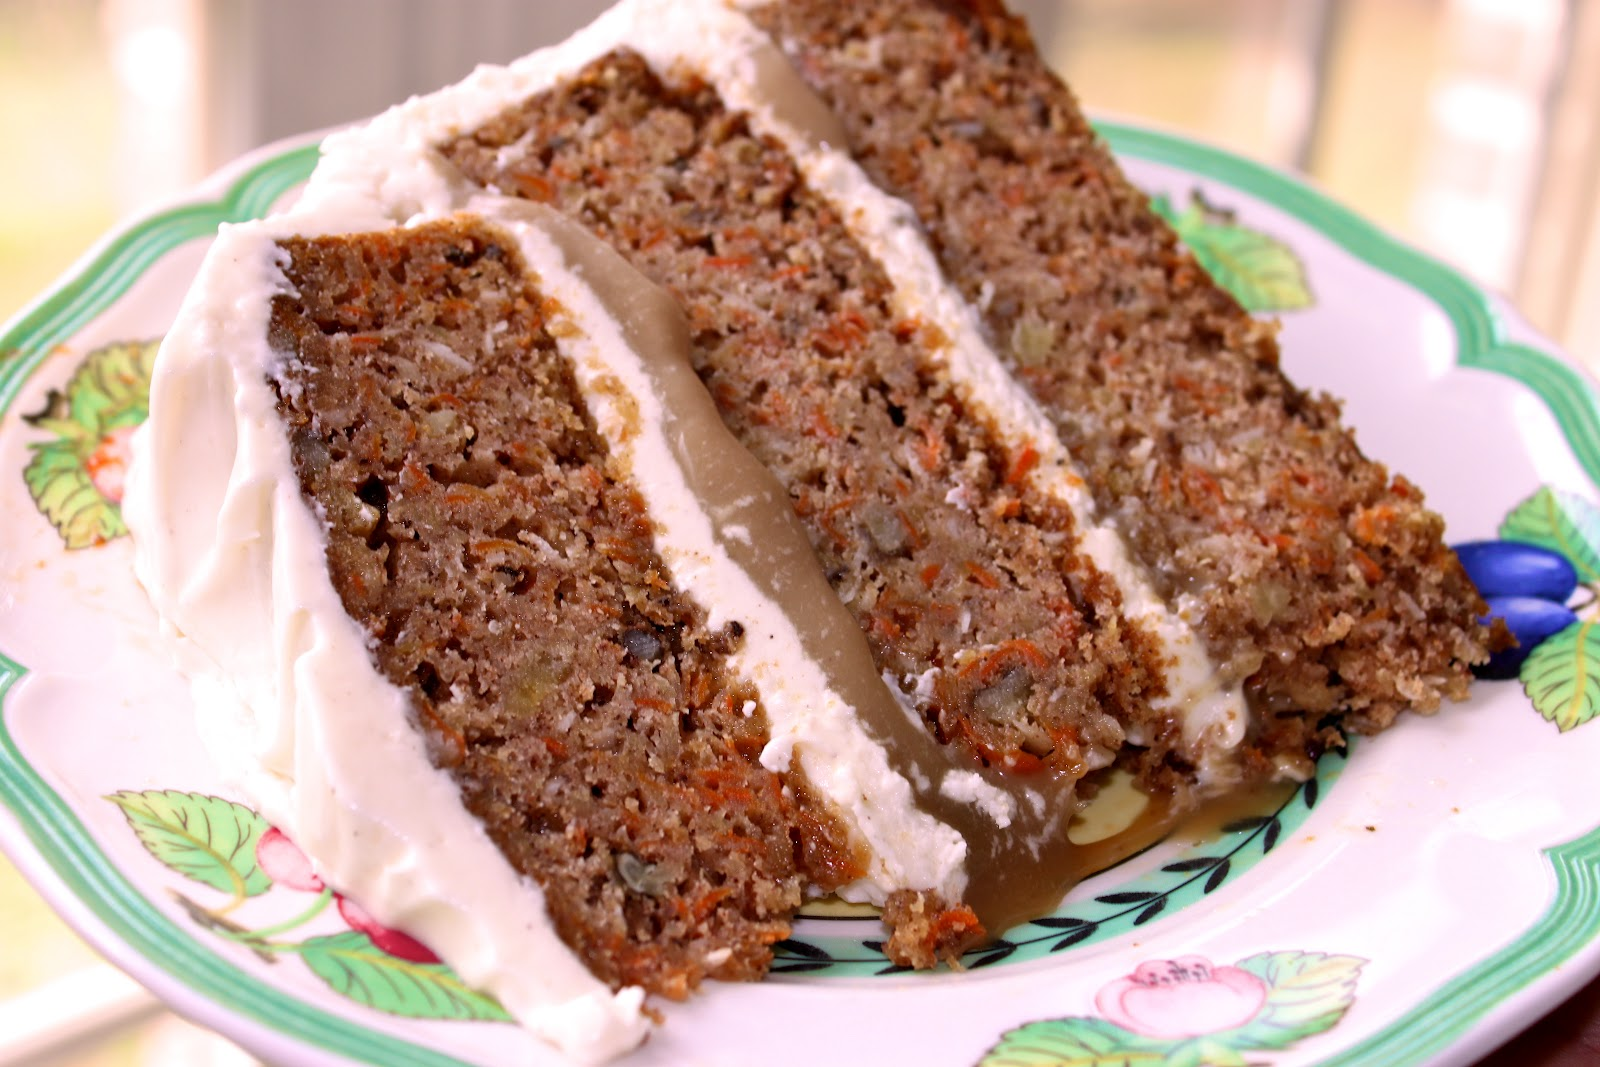 Cake Filling Recipes Without Icing Sugar: Carrot Cake With Praline Filling And Cream Cheese Frosting